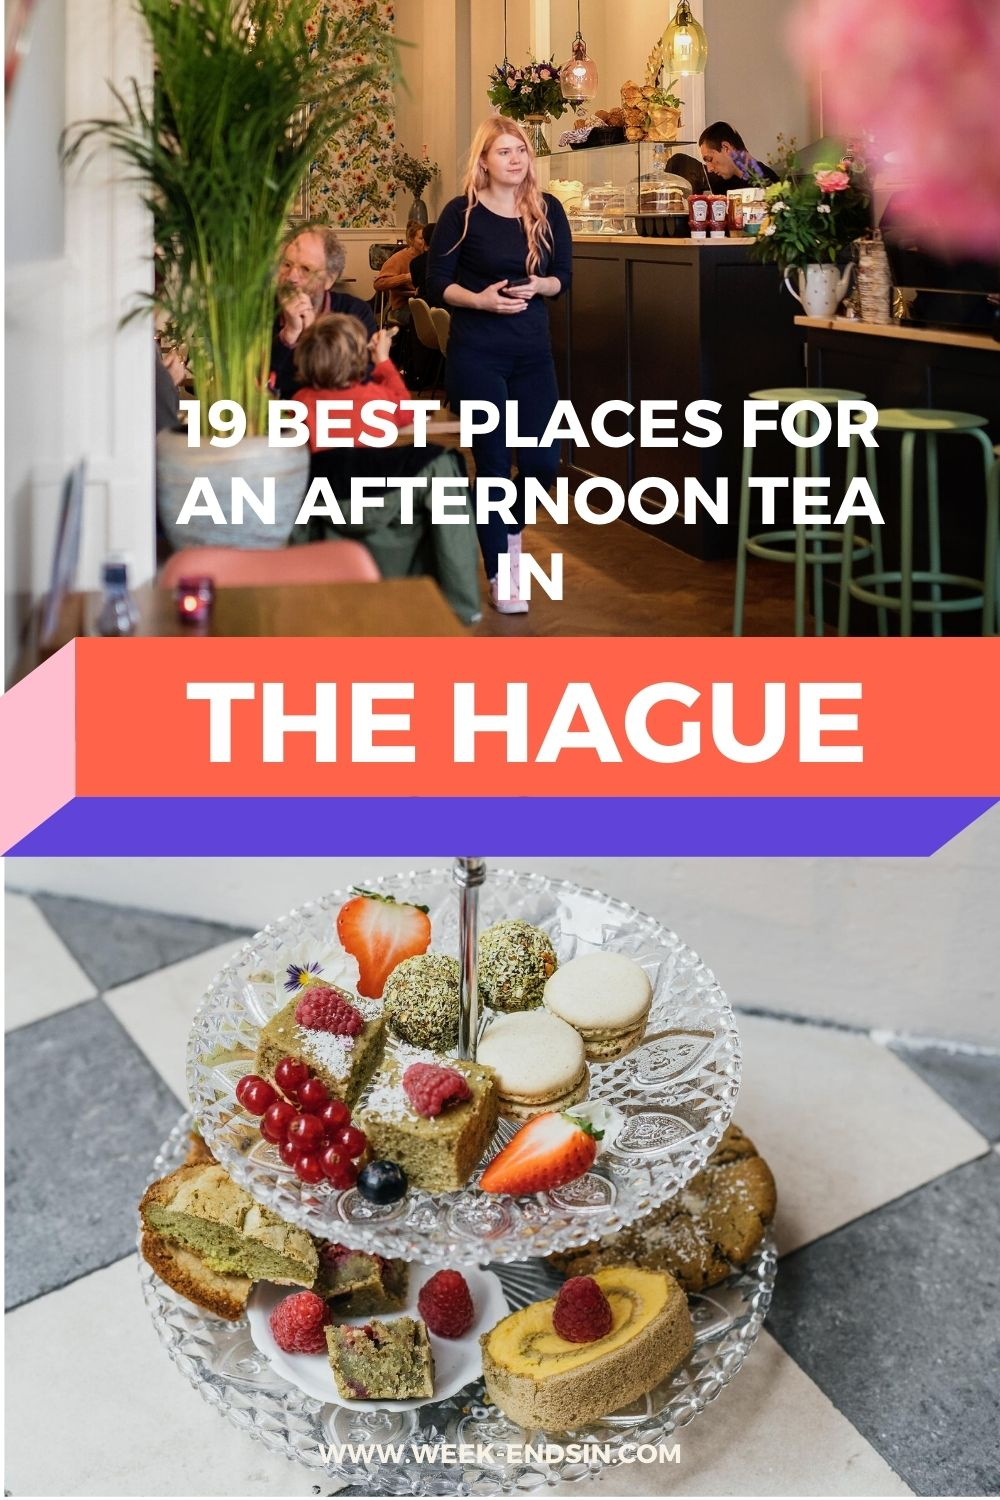 Looking for a delicious afternoon tea in The Hague? From classic English afternoon teas to unique afternoon teas with a twist. Read them here!